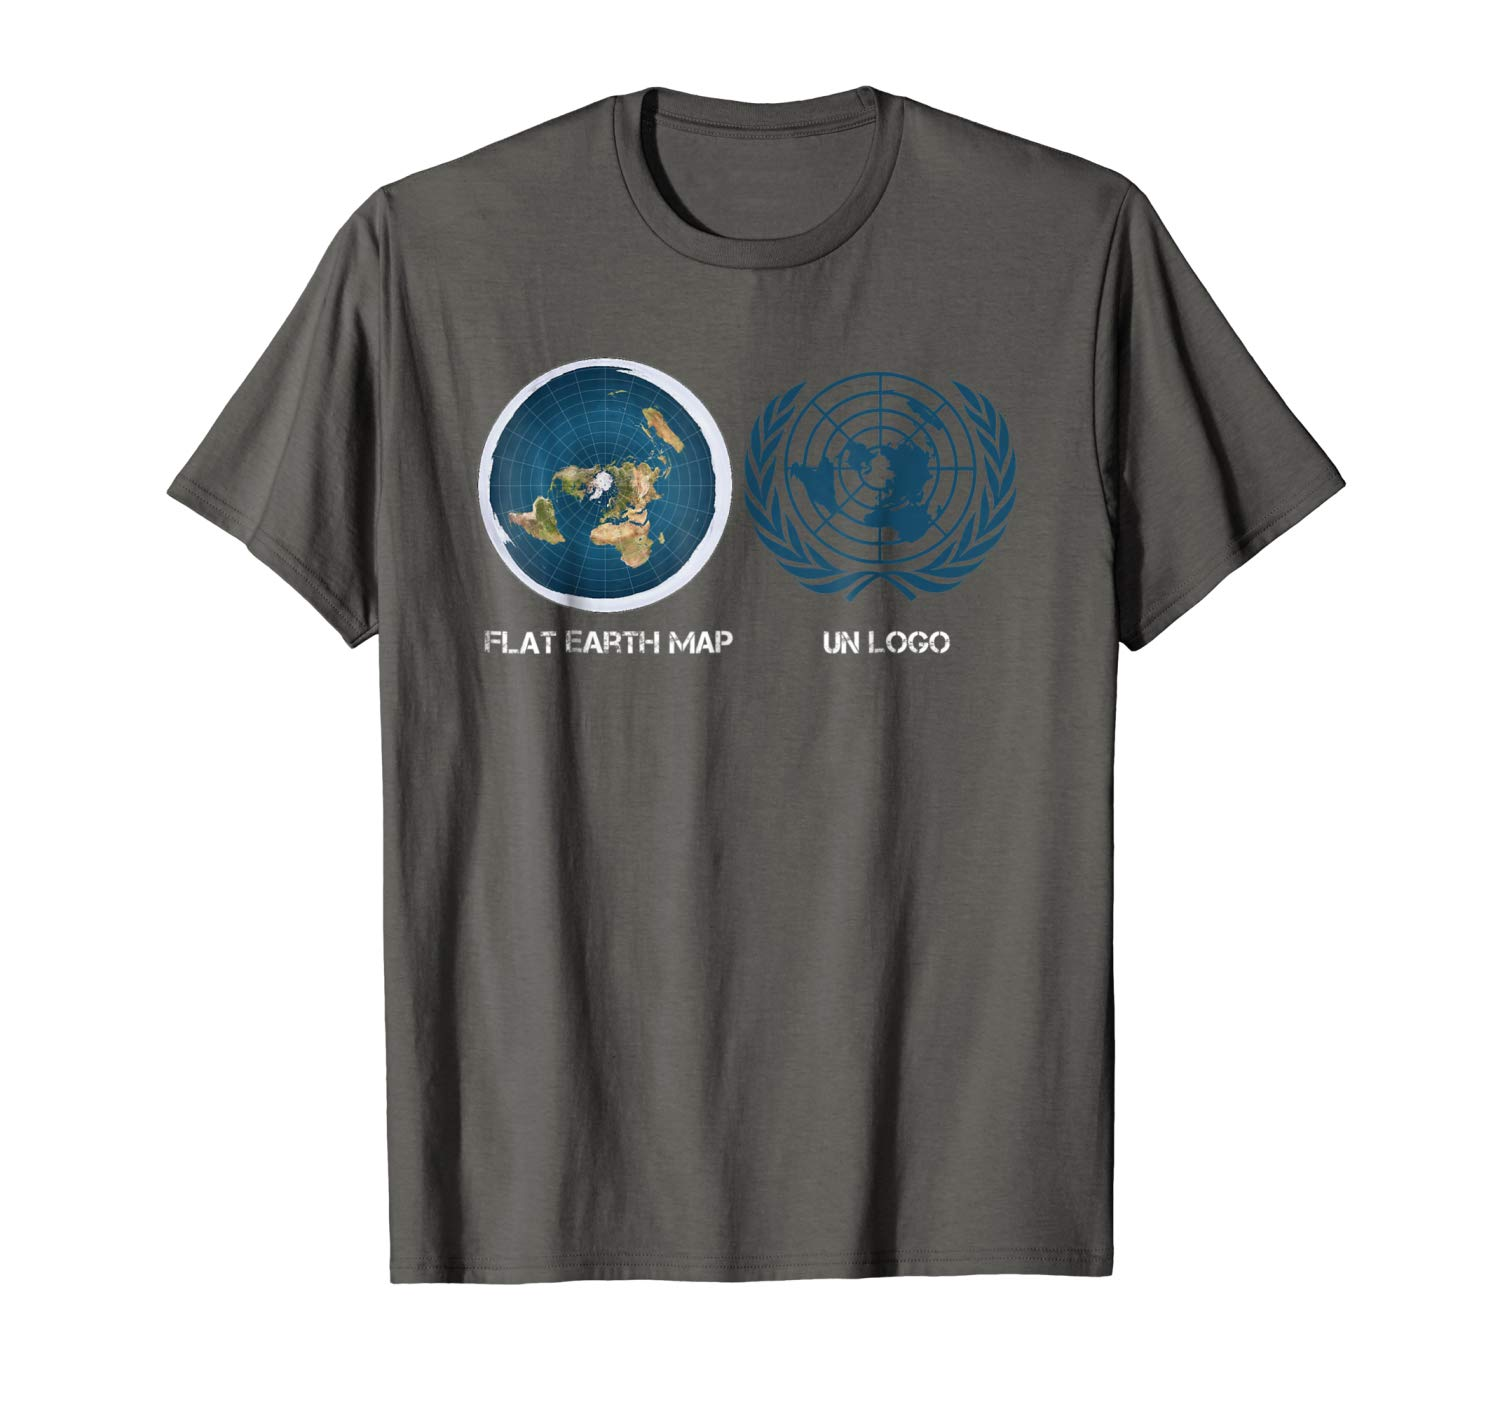 Amazon.com: Flat Earth Map Vs. United Nations Logo T.